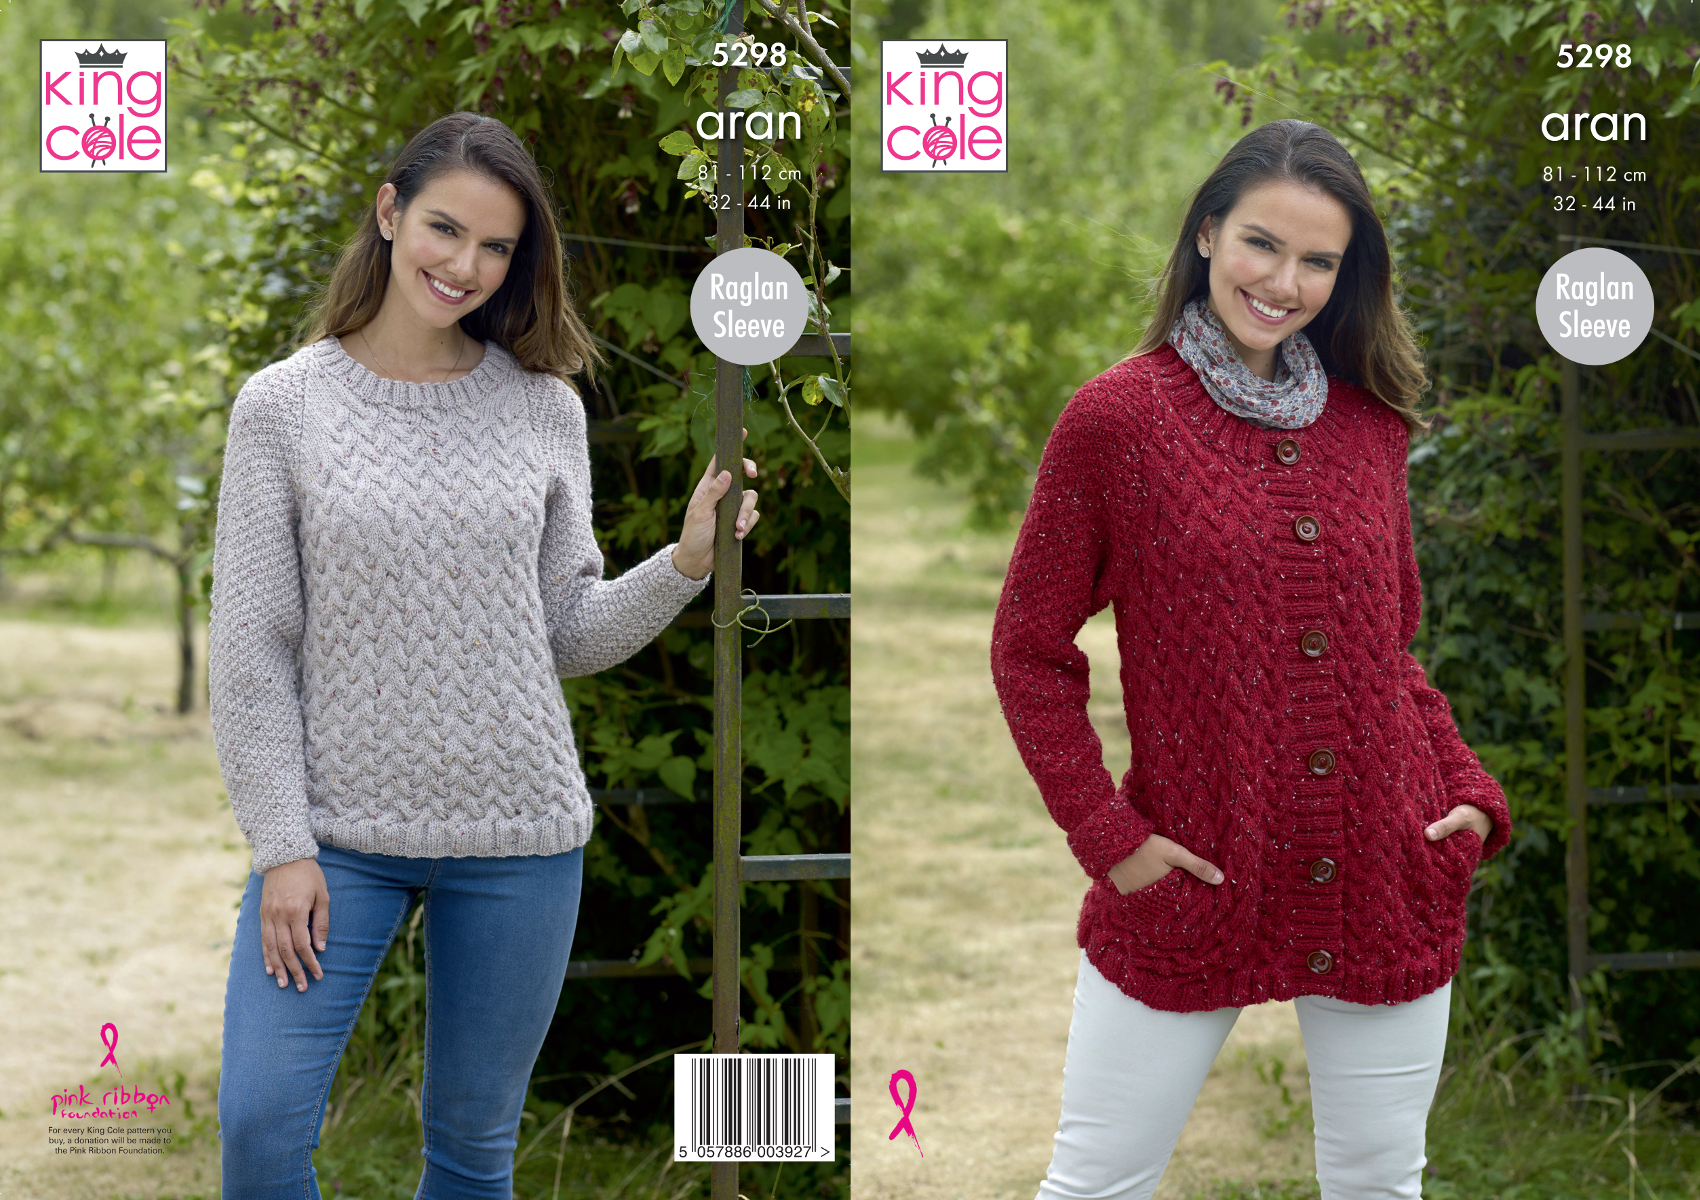 Aran Jumper Knitting Patterns Details About Womens Raglan Sleeve Cable Jumper Jacket Knitting Pattern King Cole Aran 5298